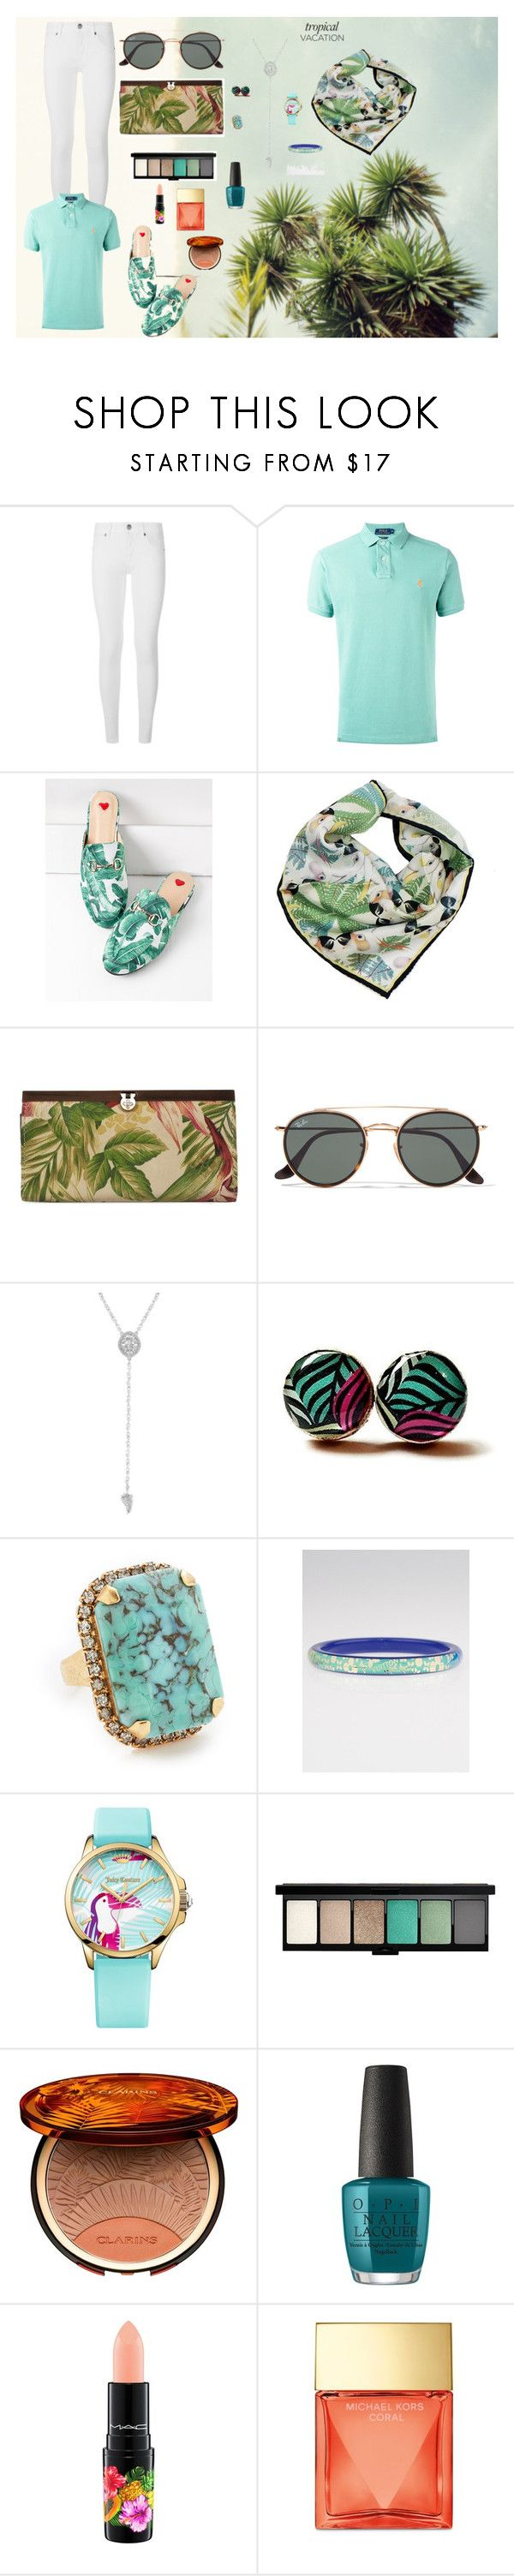 """""""Some tropical things"""" by fernandaalmeida-1 ❤ liked on Polyvore featuring Burberry, Polo Ralph Lauren, Texas and the Artichoke, Patricia Nash, Ray-Ban, Lucky Brand, Elizabeth Cole, Louis Vuitton, Juicy Couture and MAC Cosmetics"""